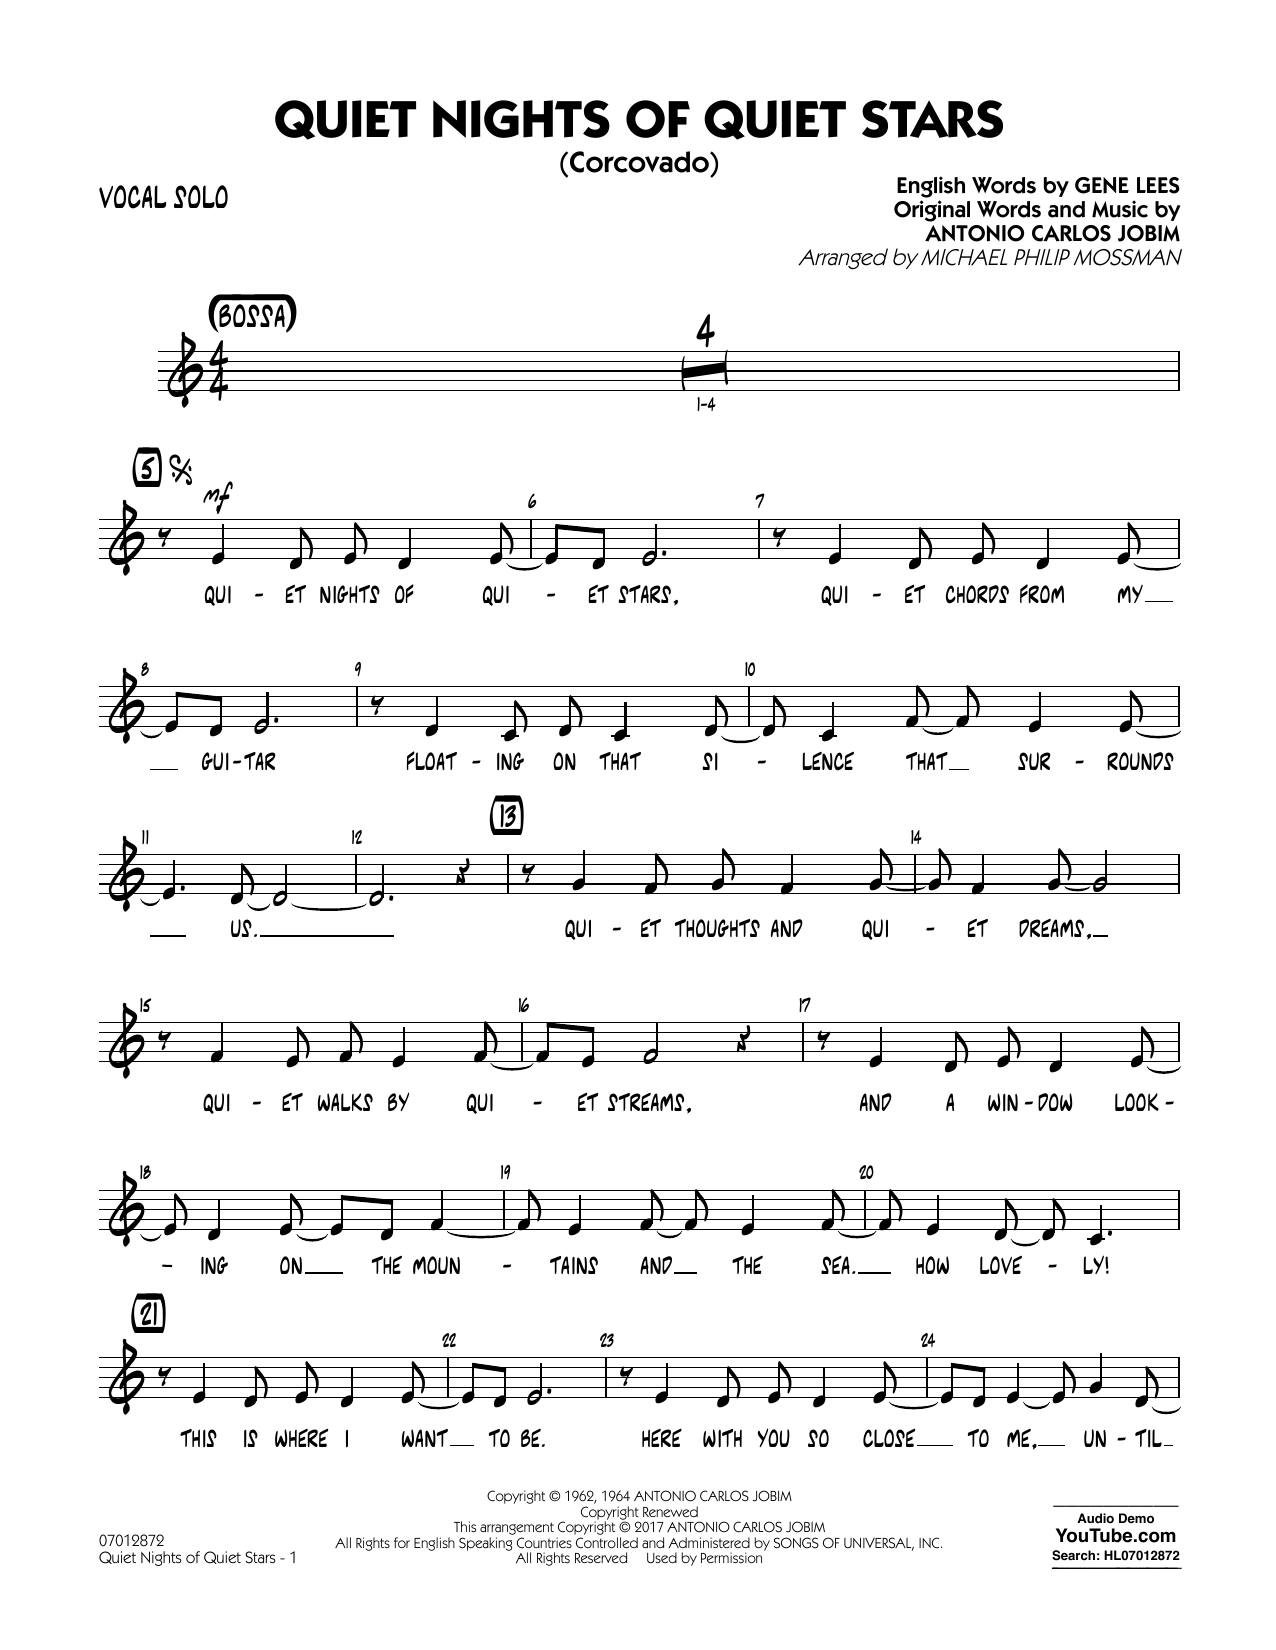 Quiet Nights of Quiet Stars (Corcovado) - Vocal Solo Sheet Music